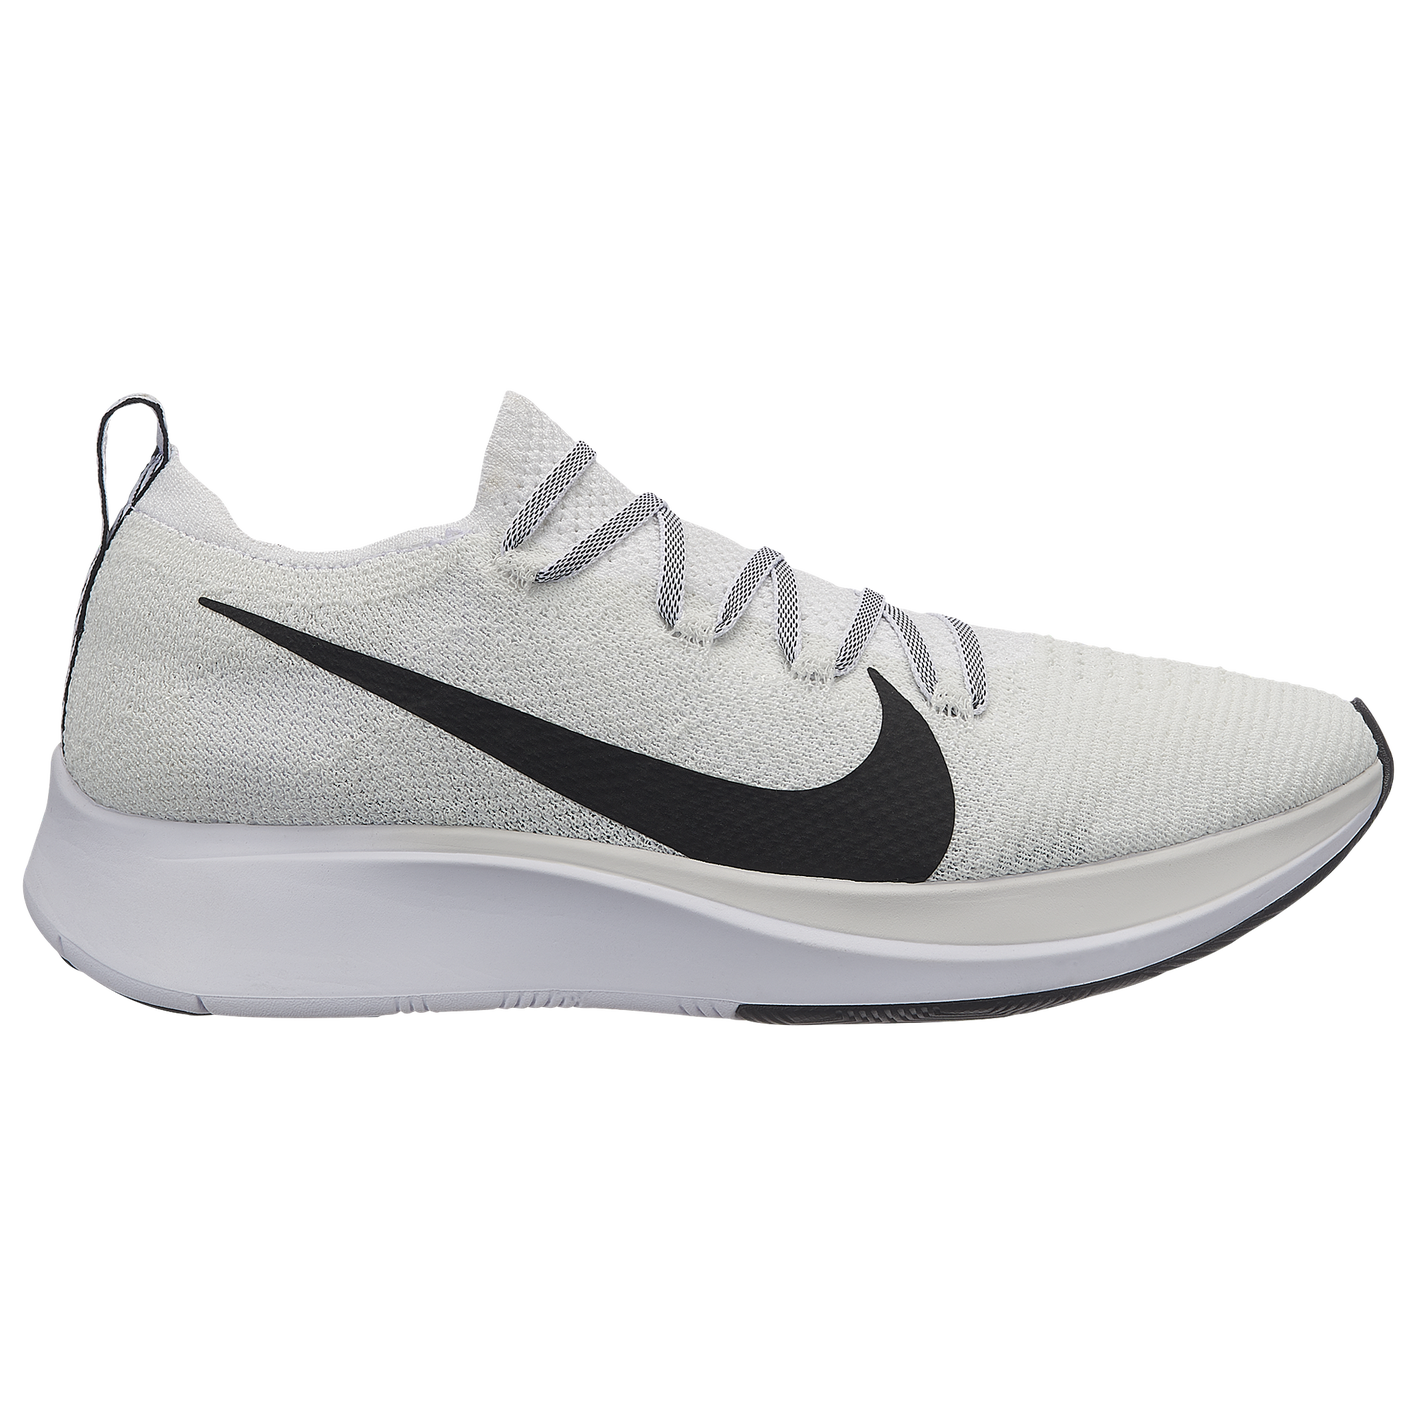 53a750afd6c95 Nike Zoom Fly Flyknit - Women s.  160.00. Product    R4562101. Selected  Style  White Black Platinum Tint ...